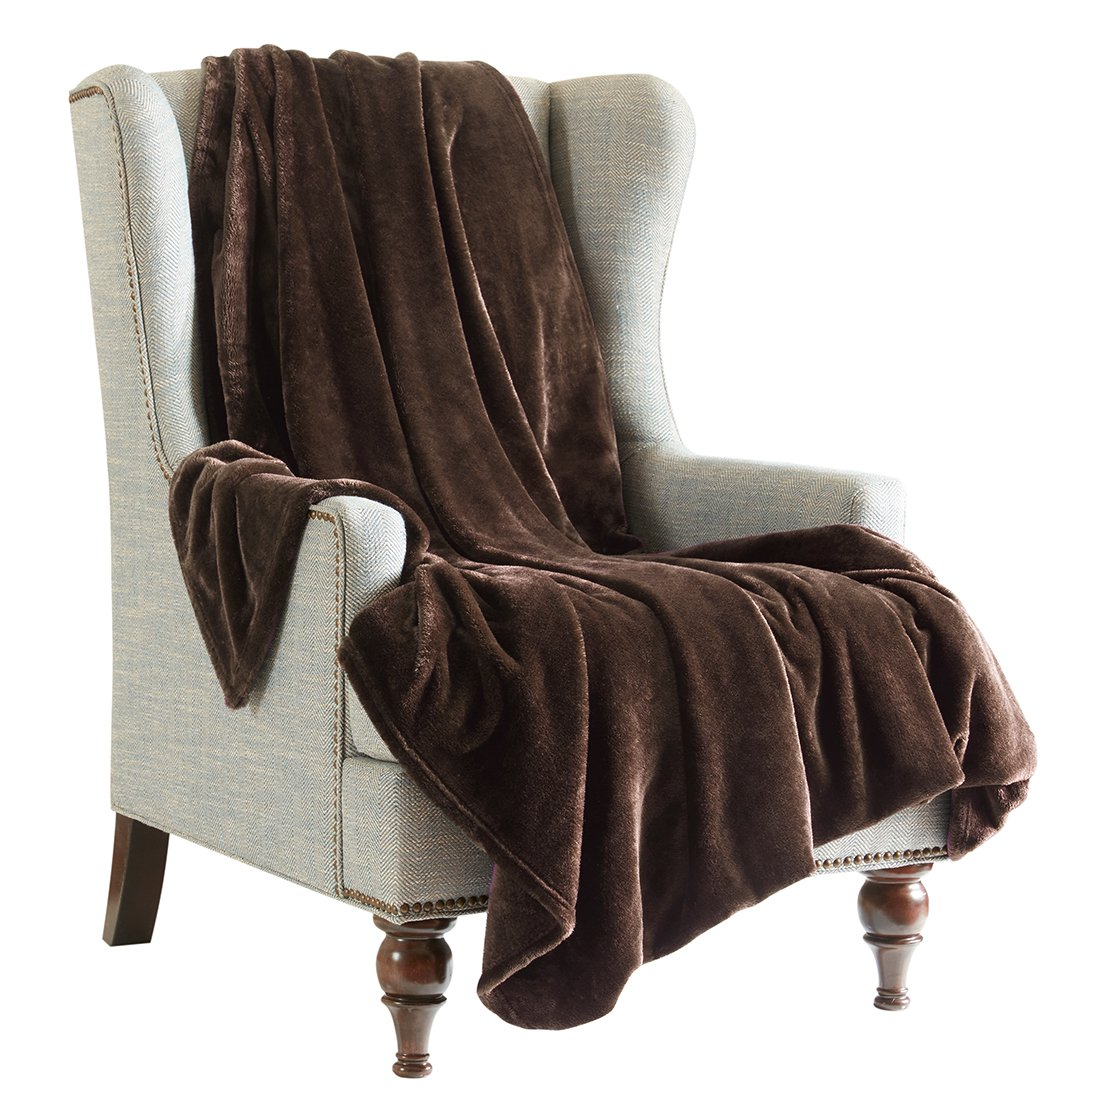 Chocolate Brown Flannel Throw Blanket For Sofa, Size 150x200 cm, Solid color Soft Fluffy Cozy Lightweight Double Bed Throws Bedspread SCM